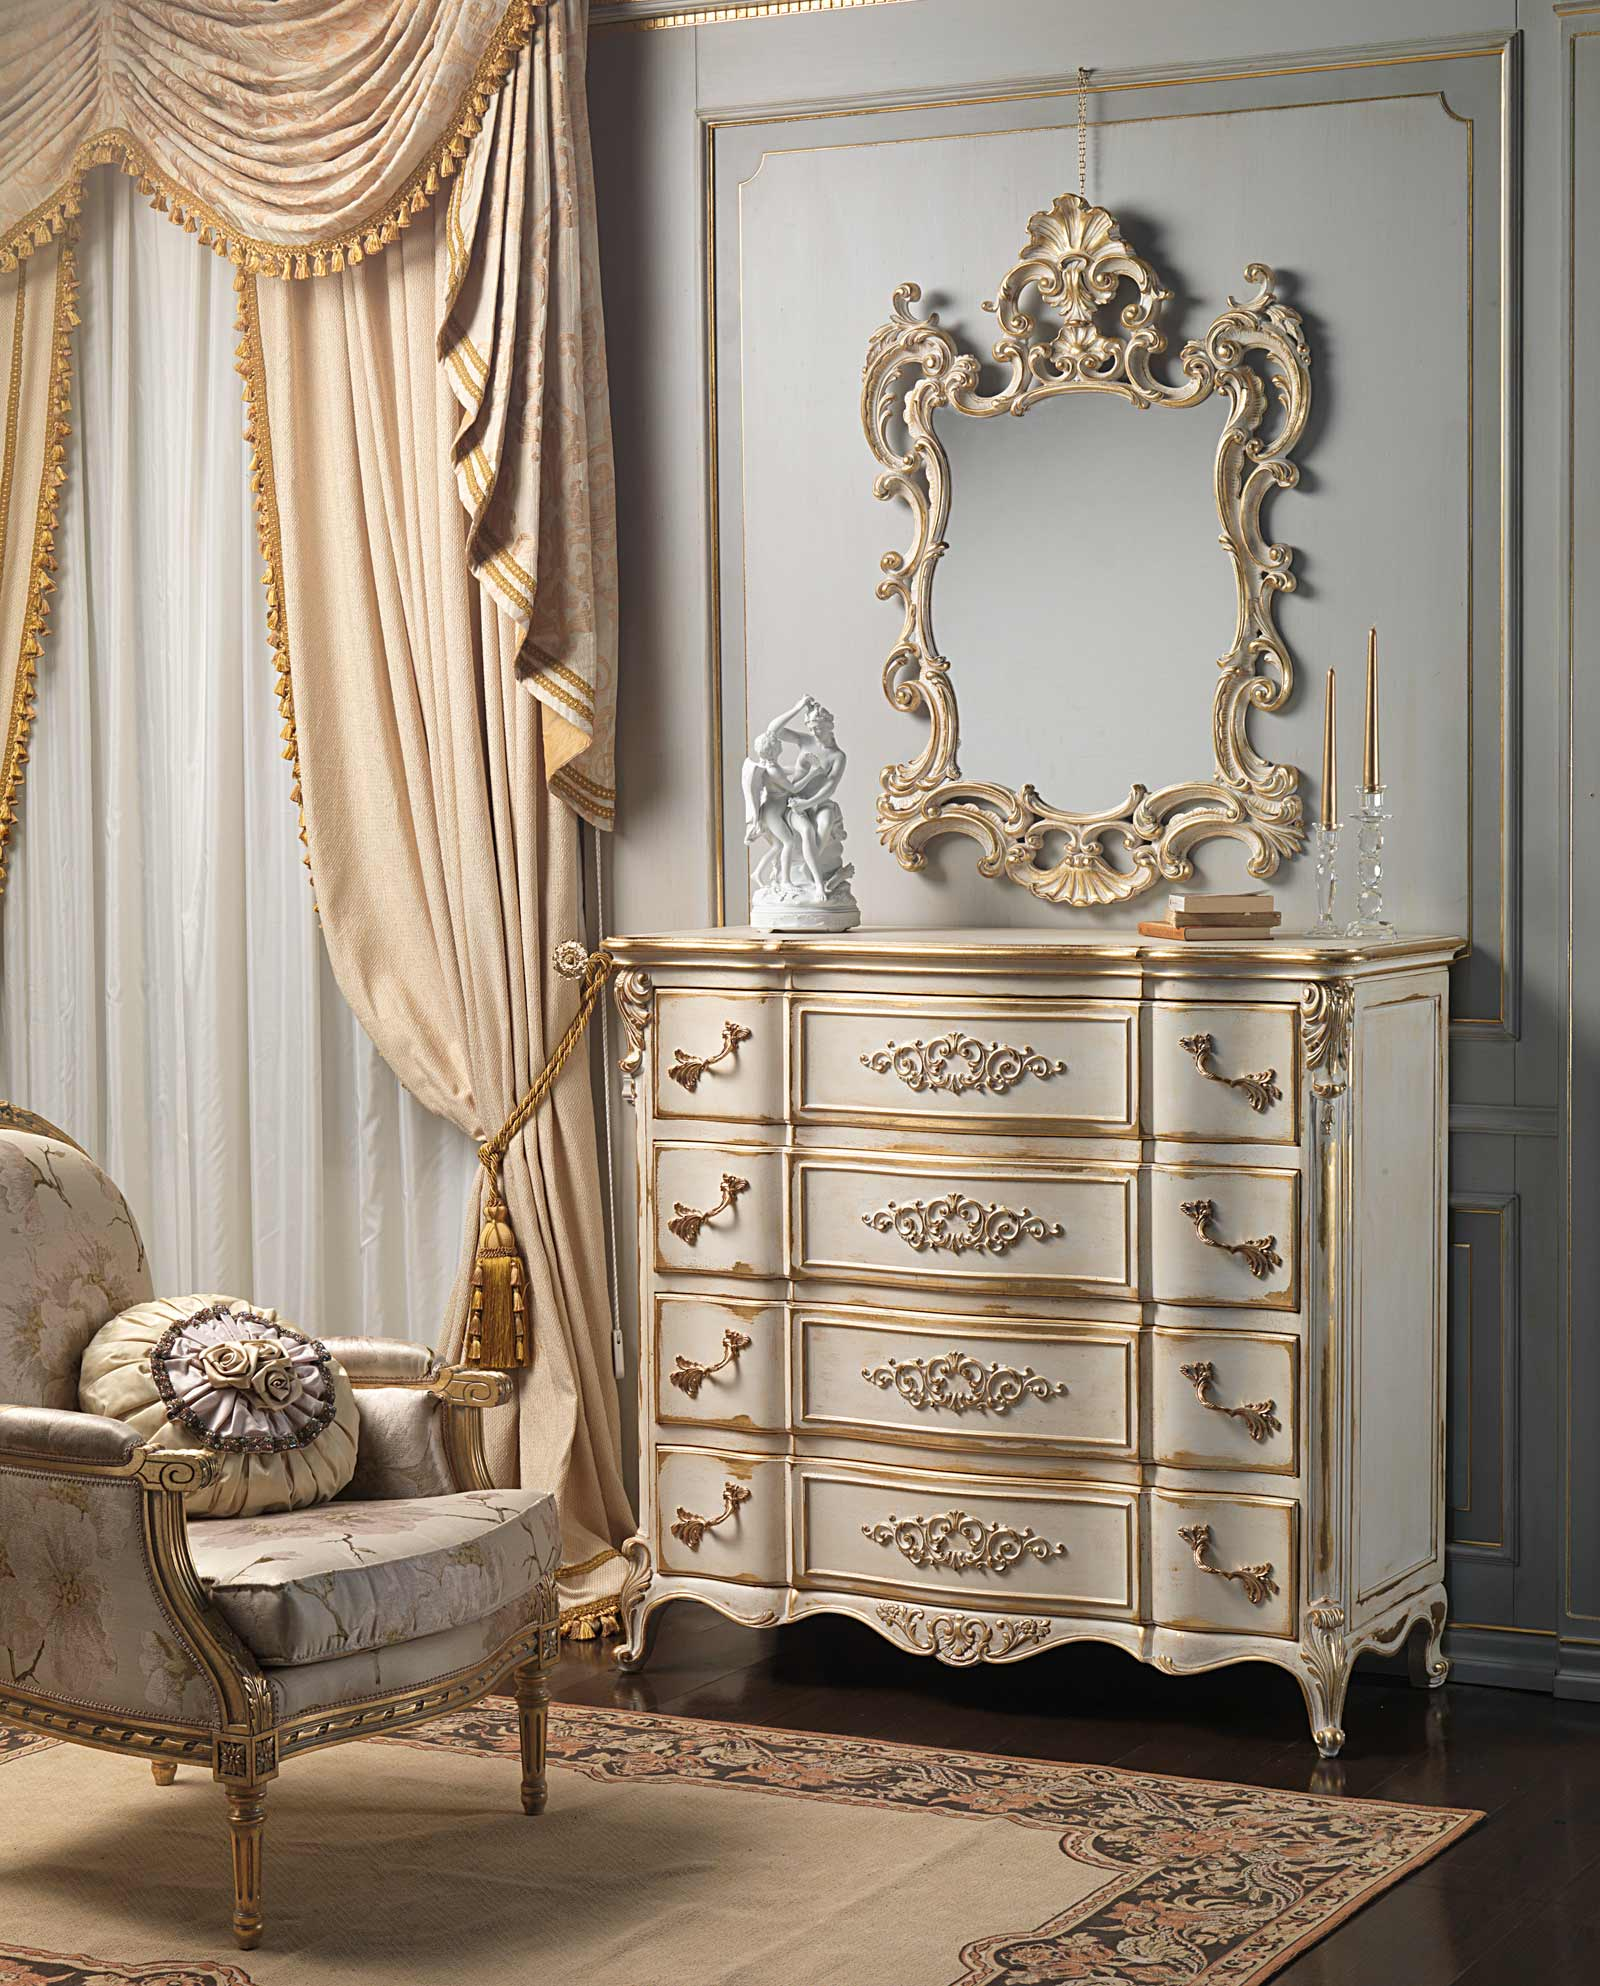 Classic Louis Xvi Bedroom Chest Of Drawers And Mirror Carved By Hand With Golden Details